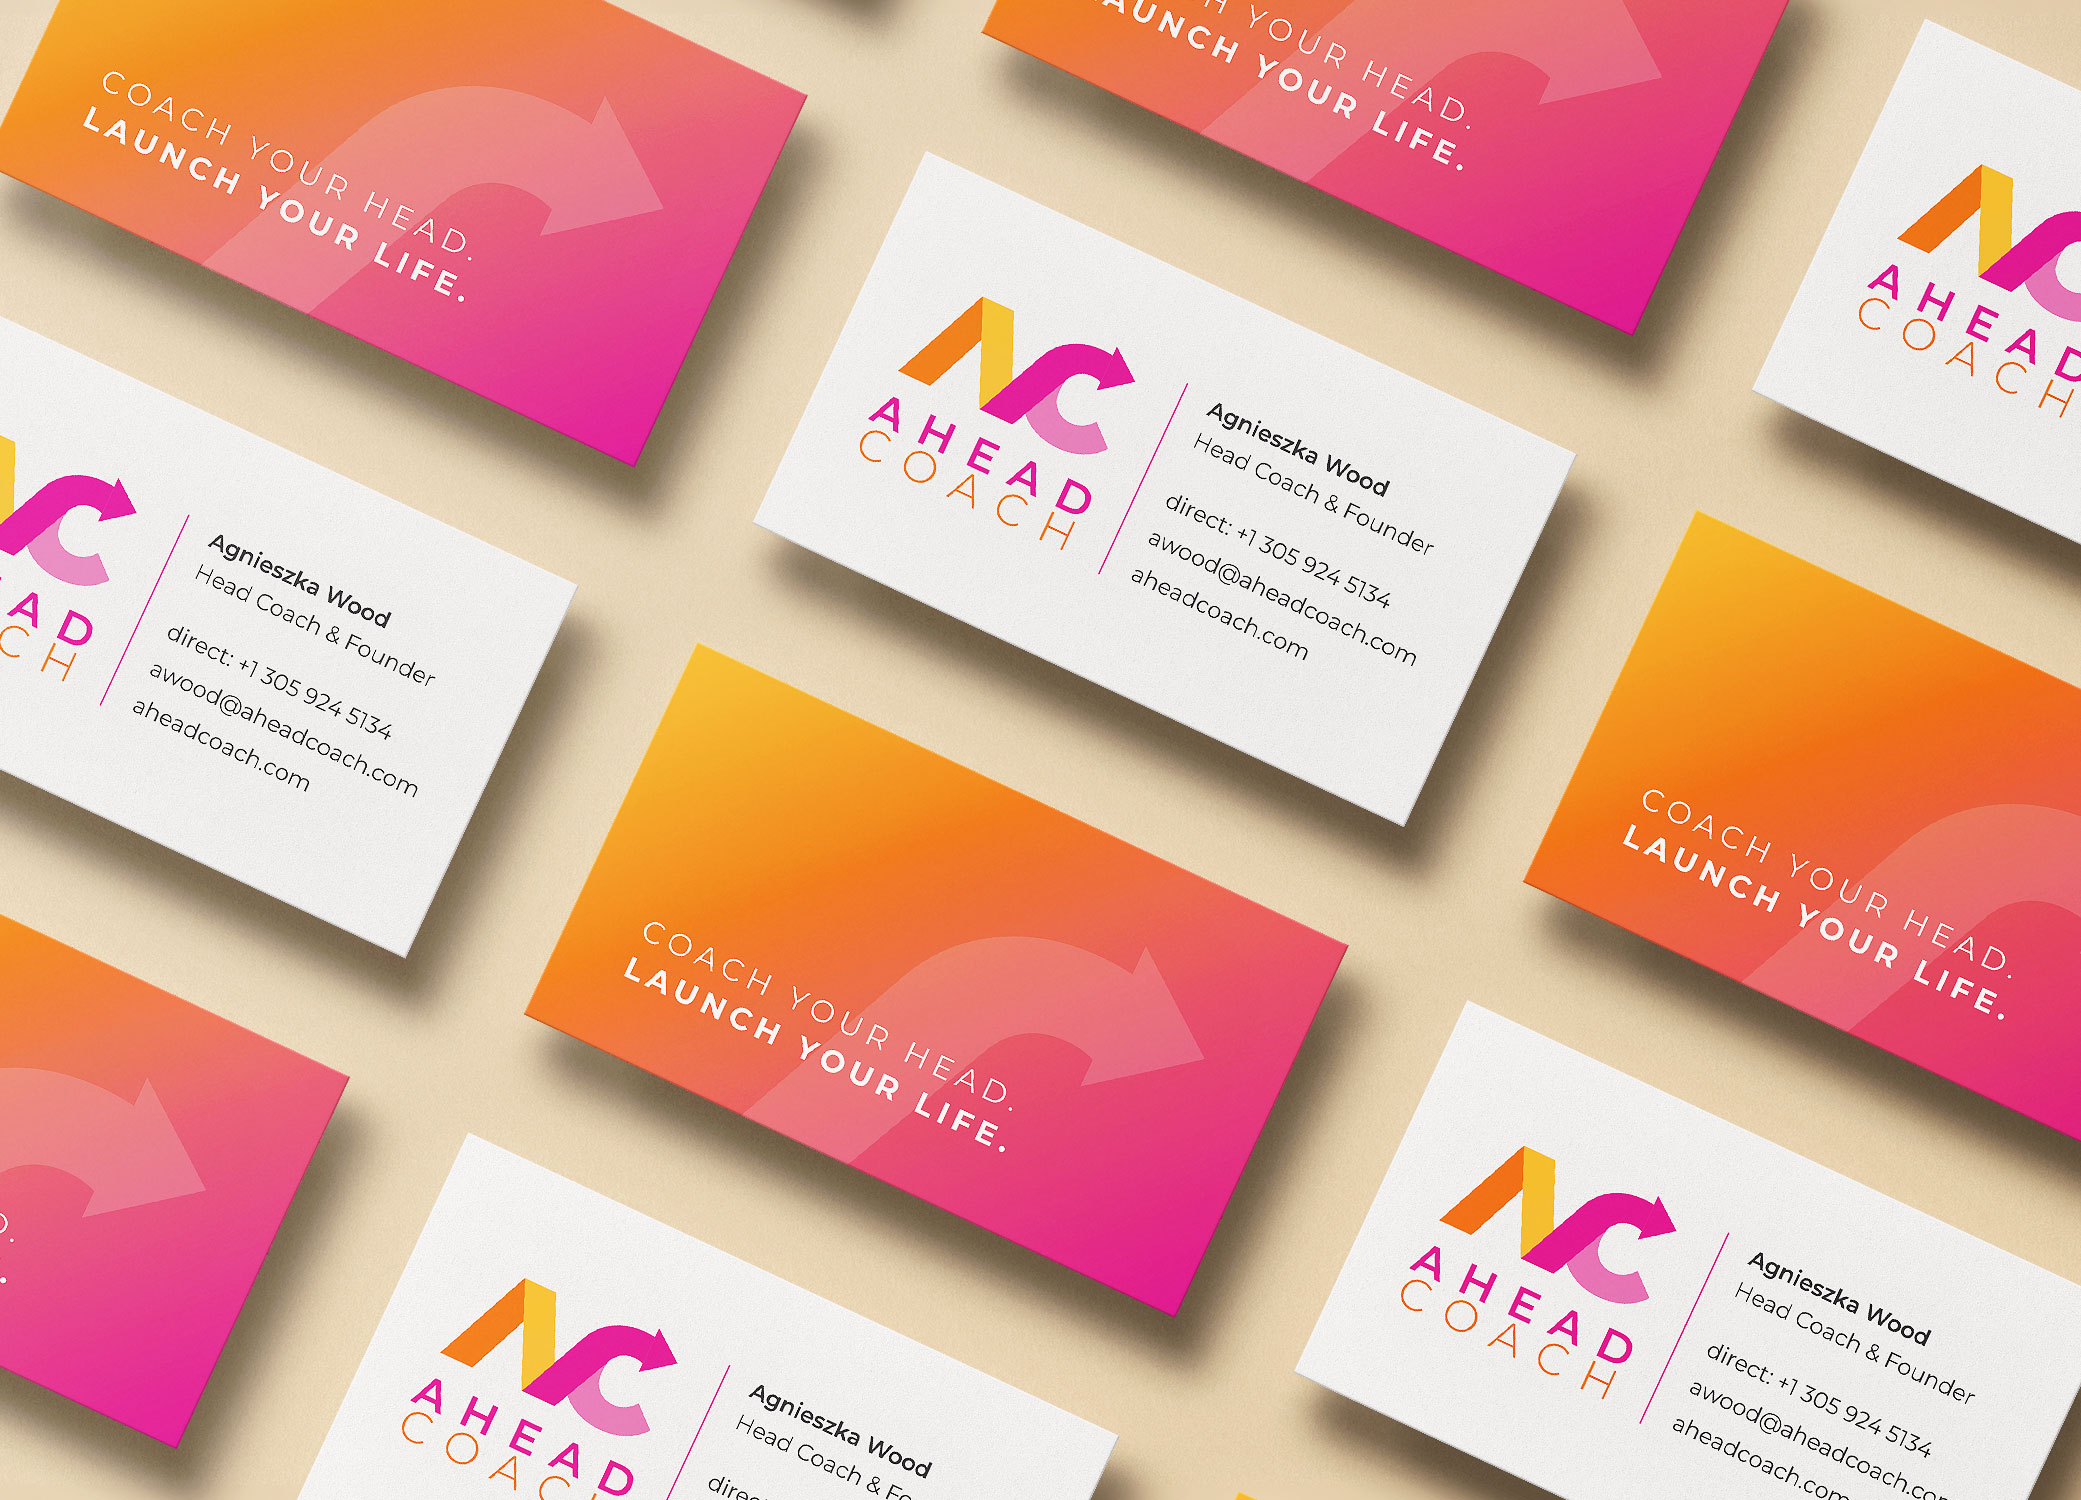 Ahead Coach business cards arranged in diagonal rows to show front and back view.